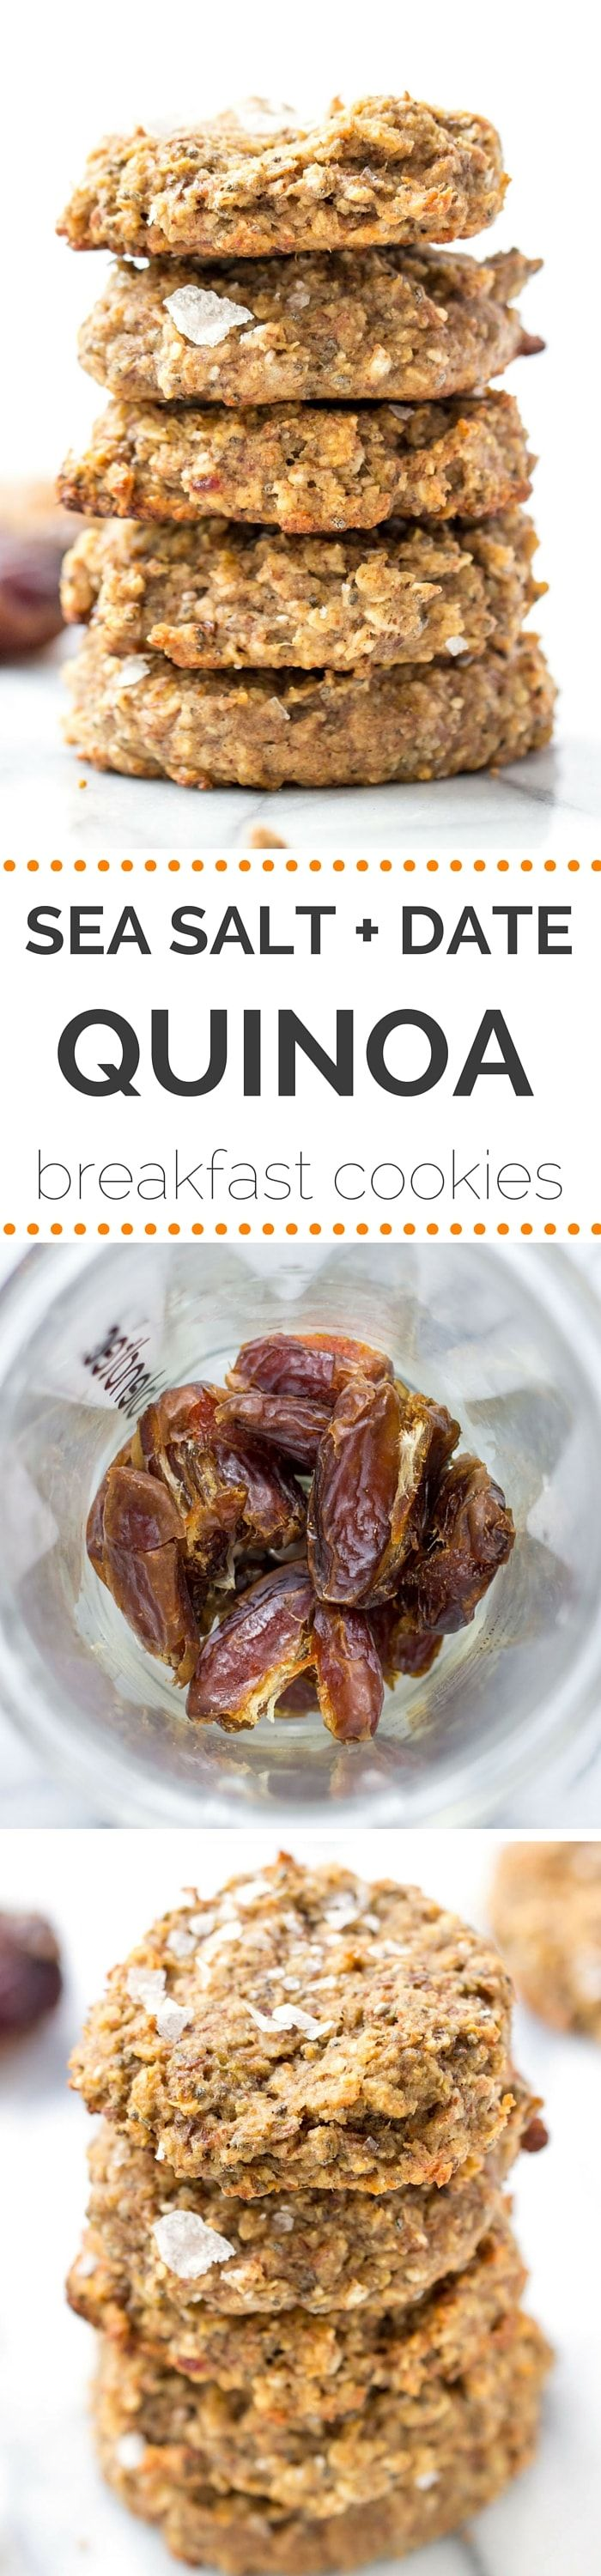 1000+ images about SIMPLY QUINOA RECIPES on Pinterest ...